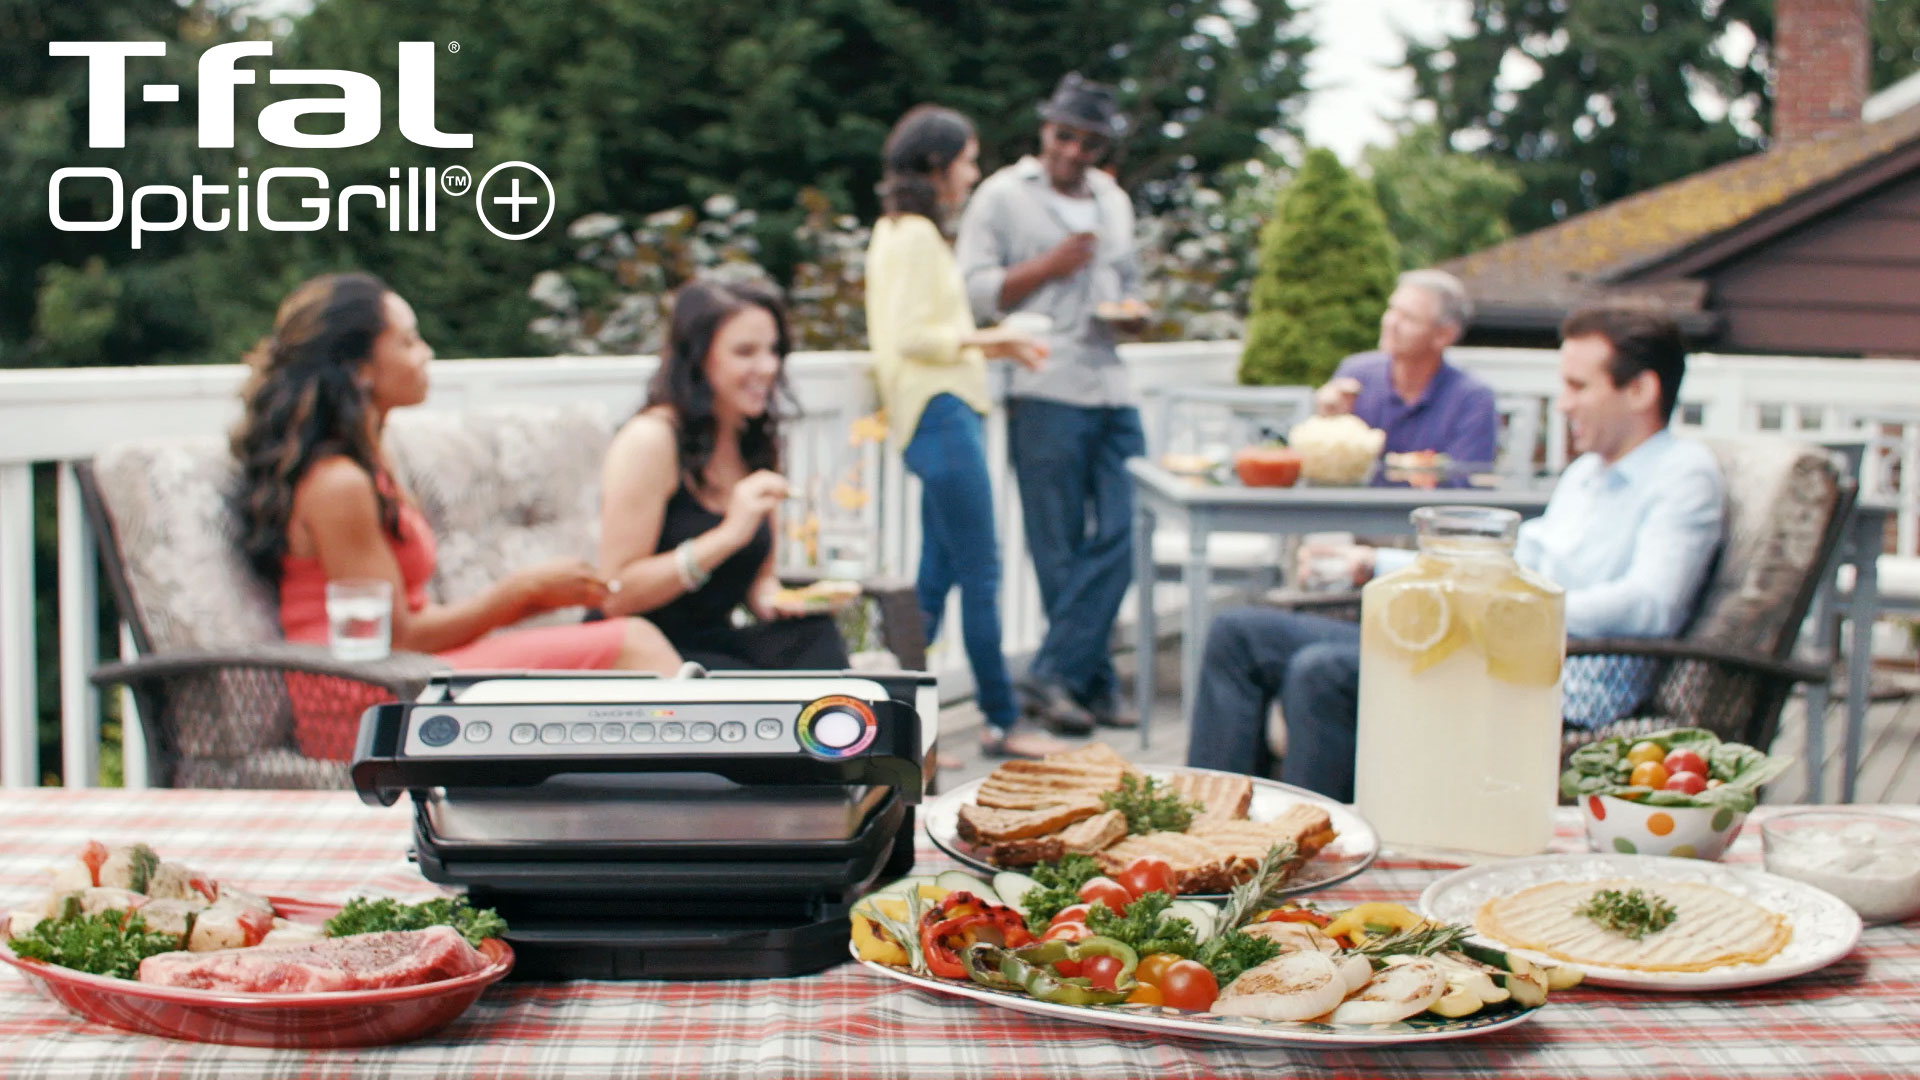 Screen shot from T-Fal Optigrill commercial by Envision Response